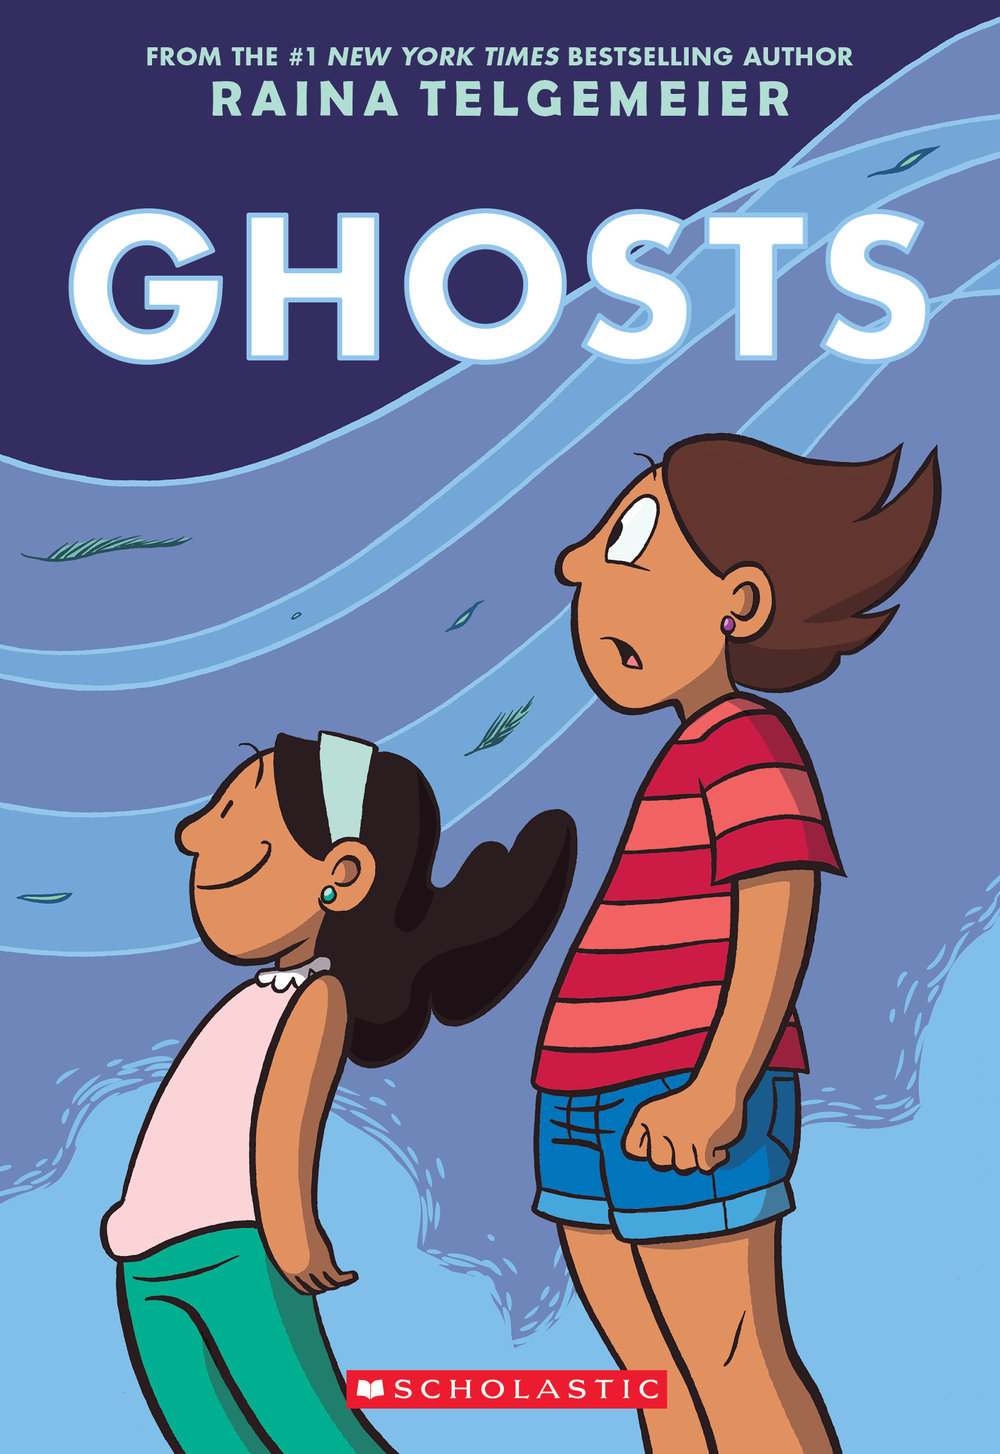 Ghost by Raina Telgemeier